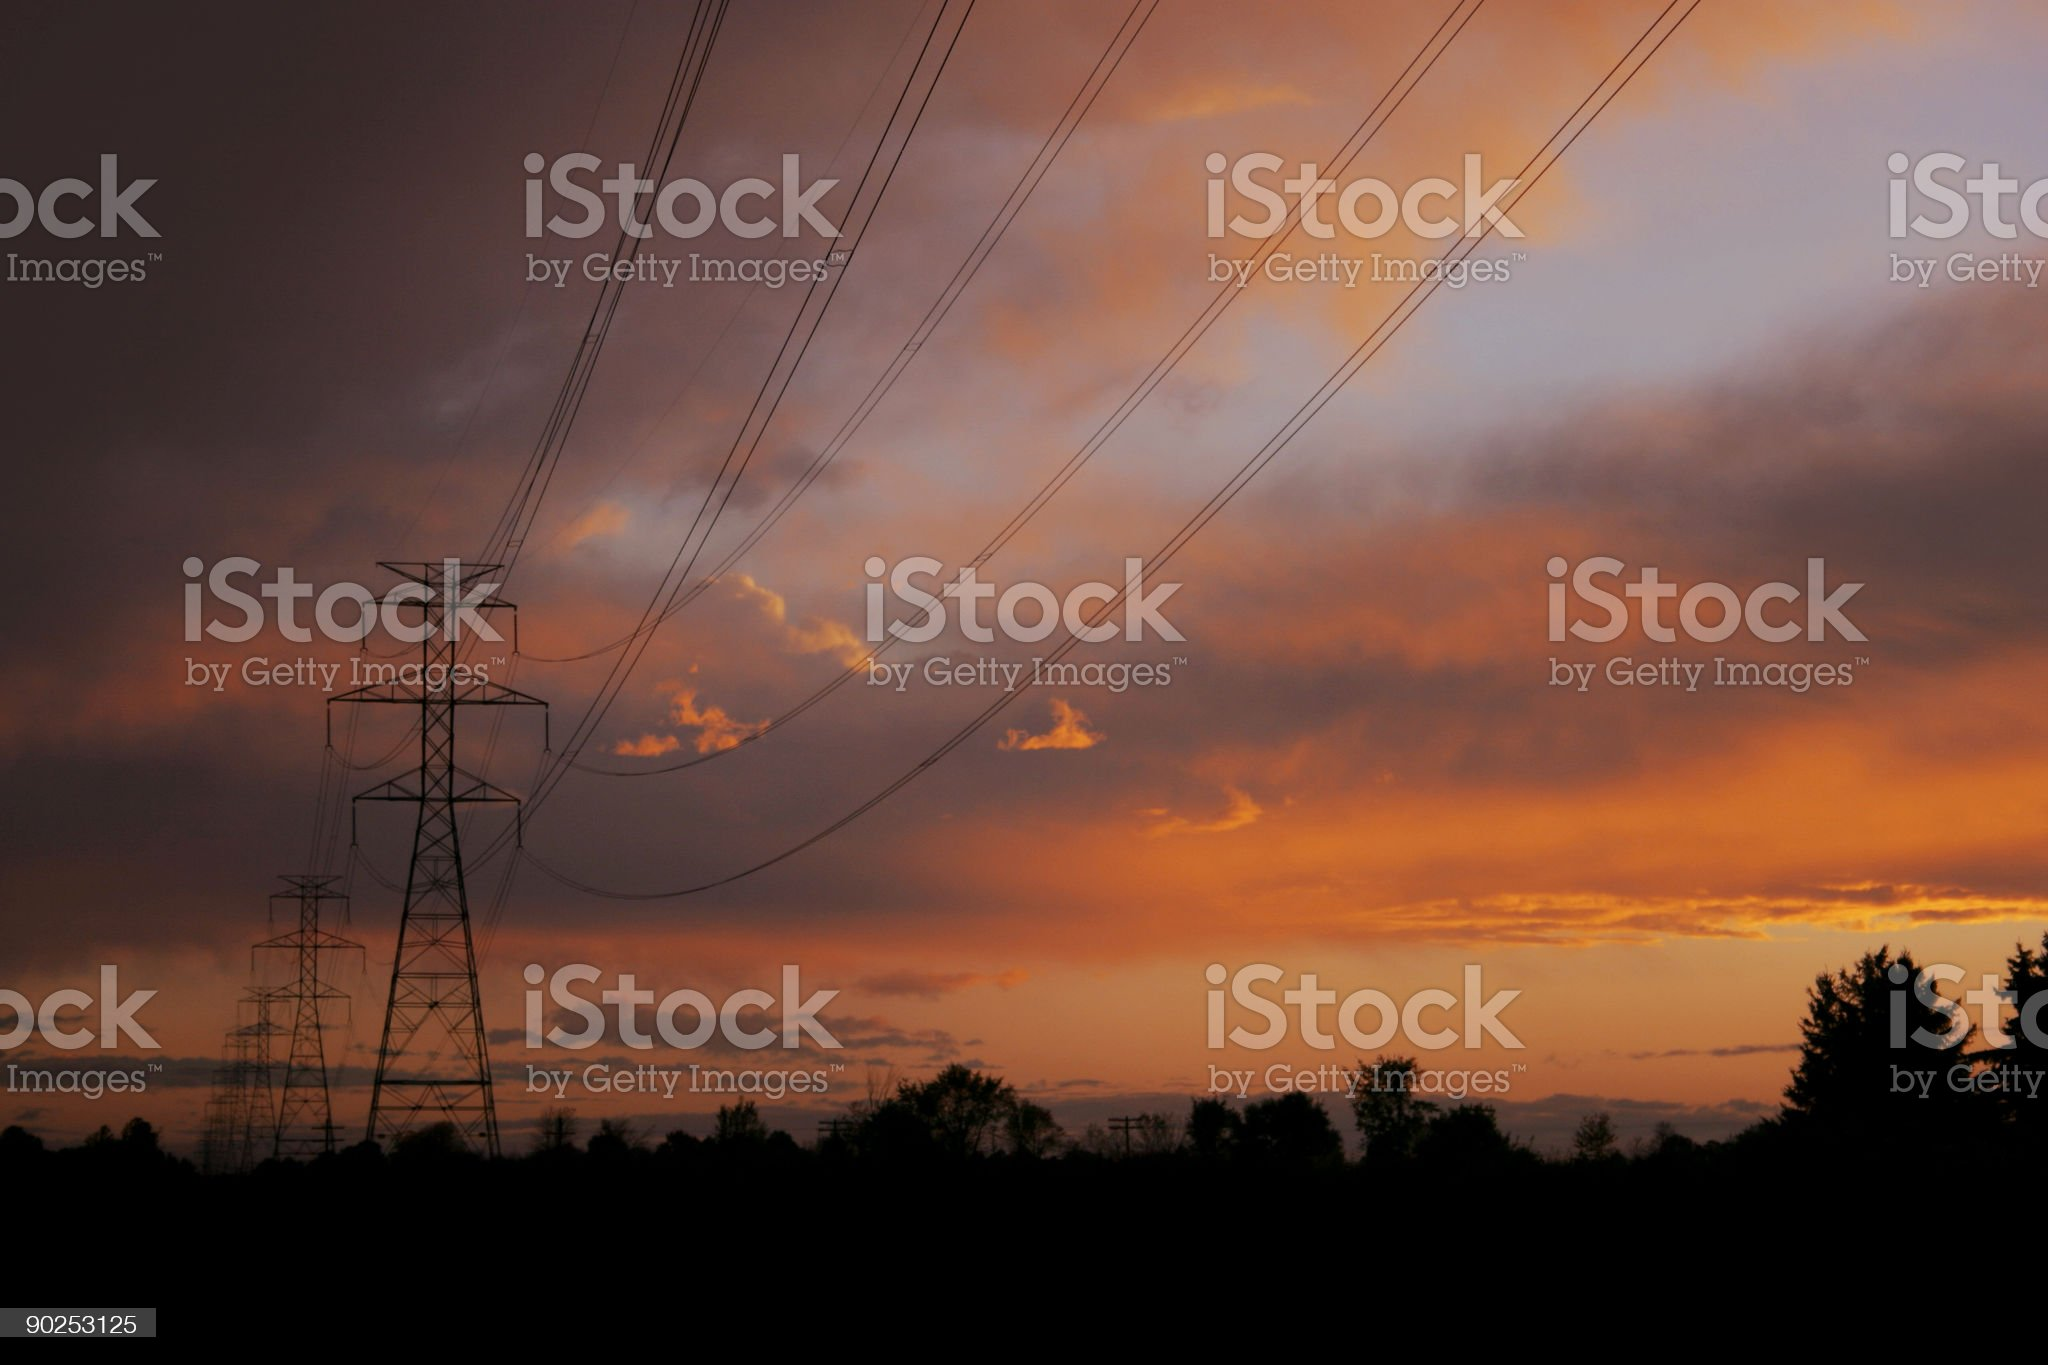 Powerlines at sunset1 royalty-free stock photo